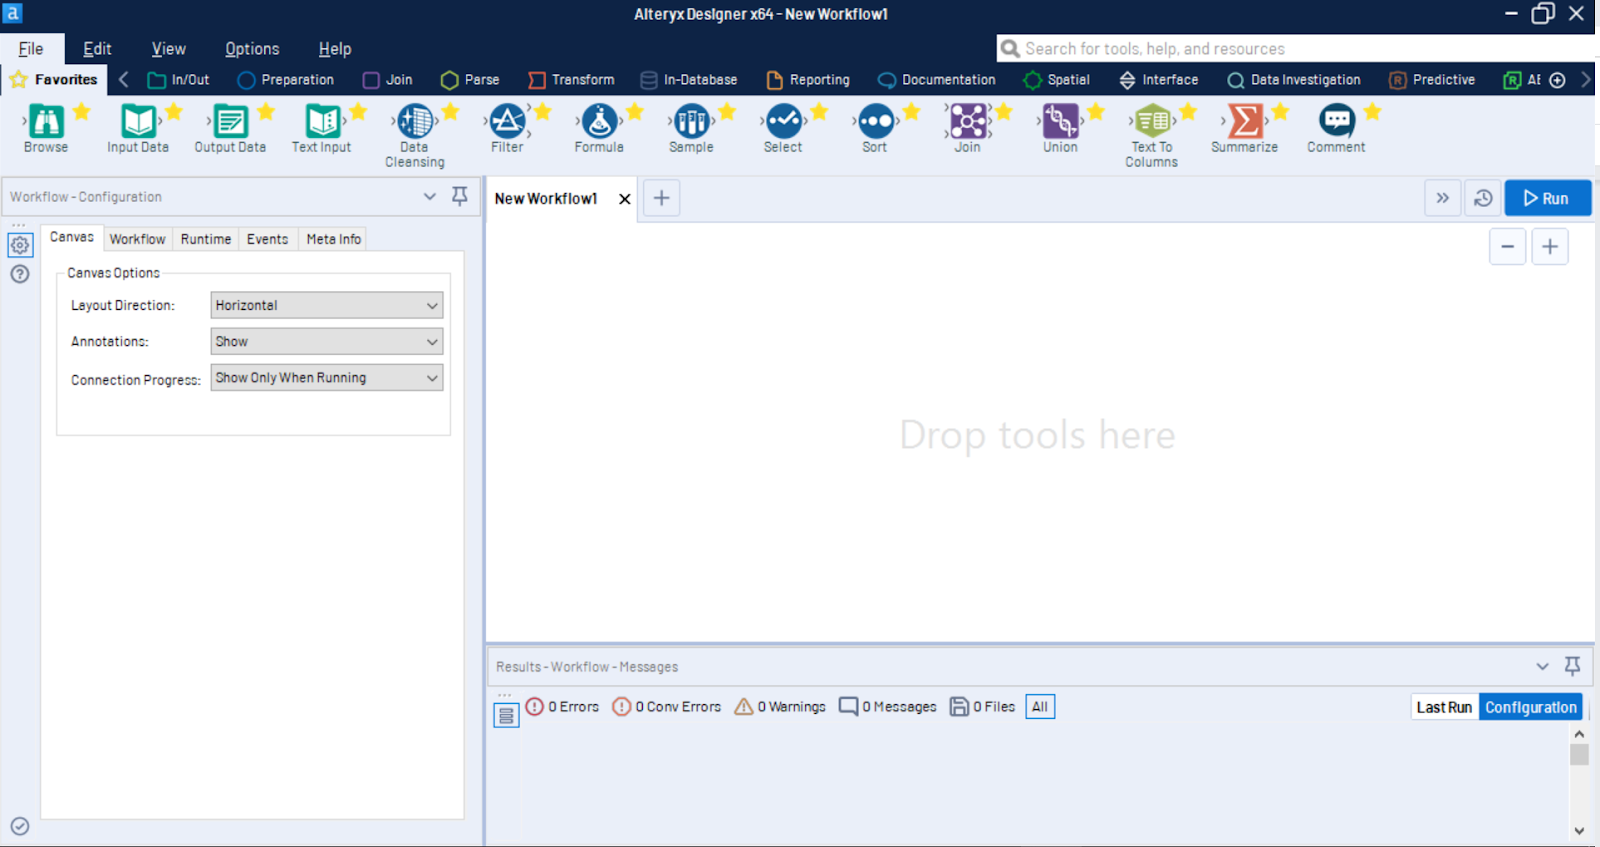 How to connect to Denodo from Alteryx